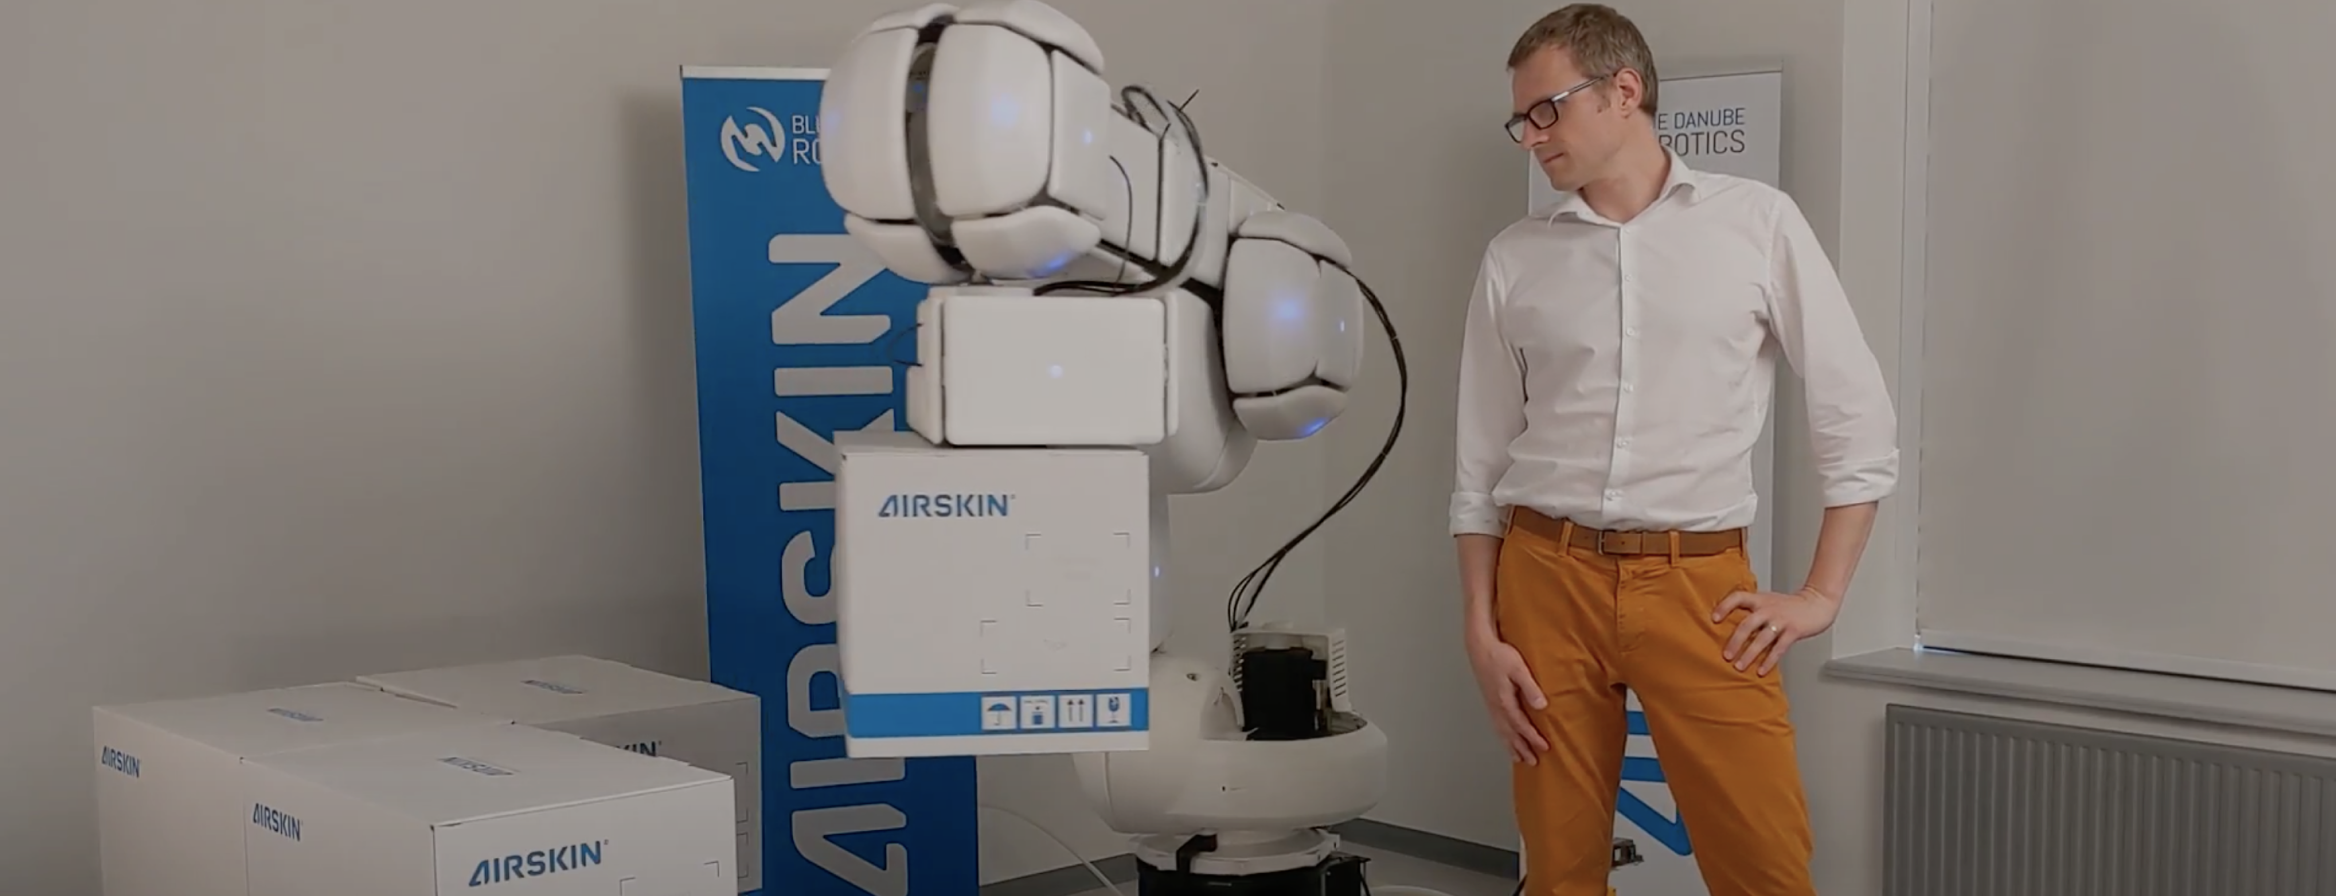 Man standing next to a robot equipped with AIRSKIN